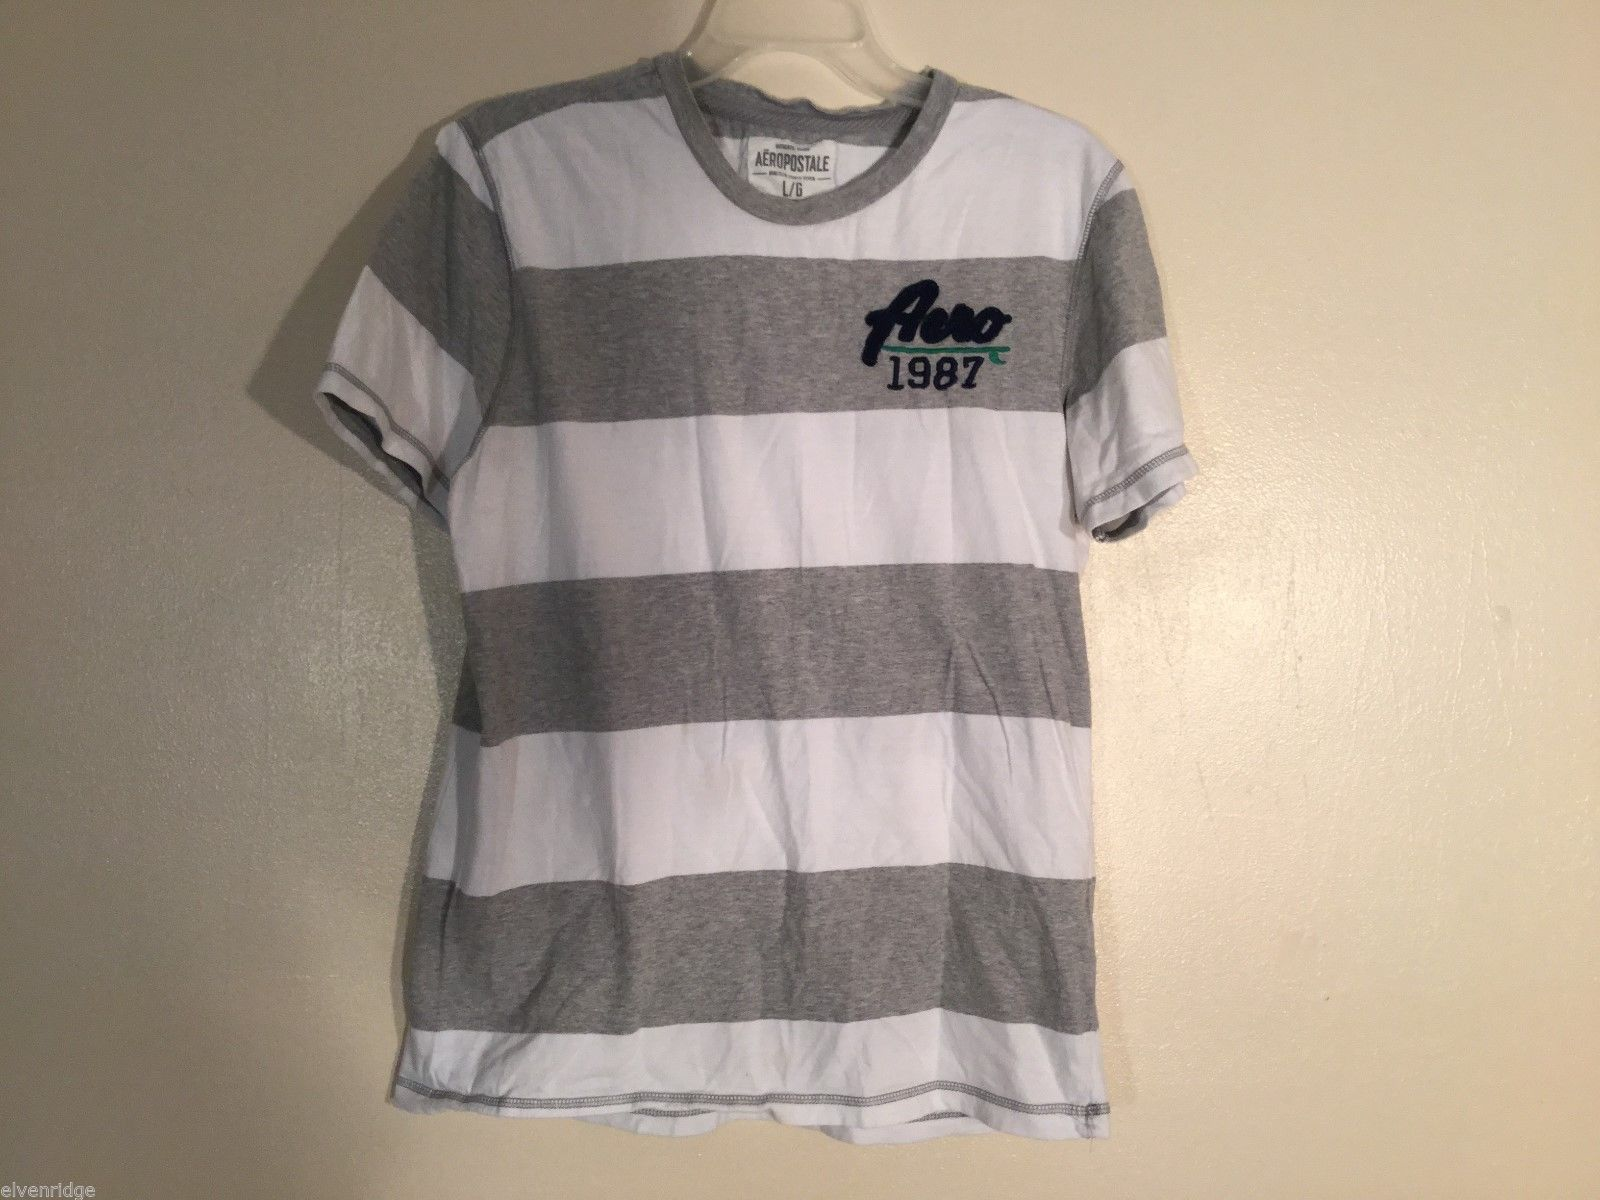 Mens Aeropostale Gray and White Striped T-Shirt, Size Large